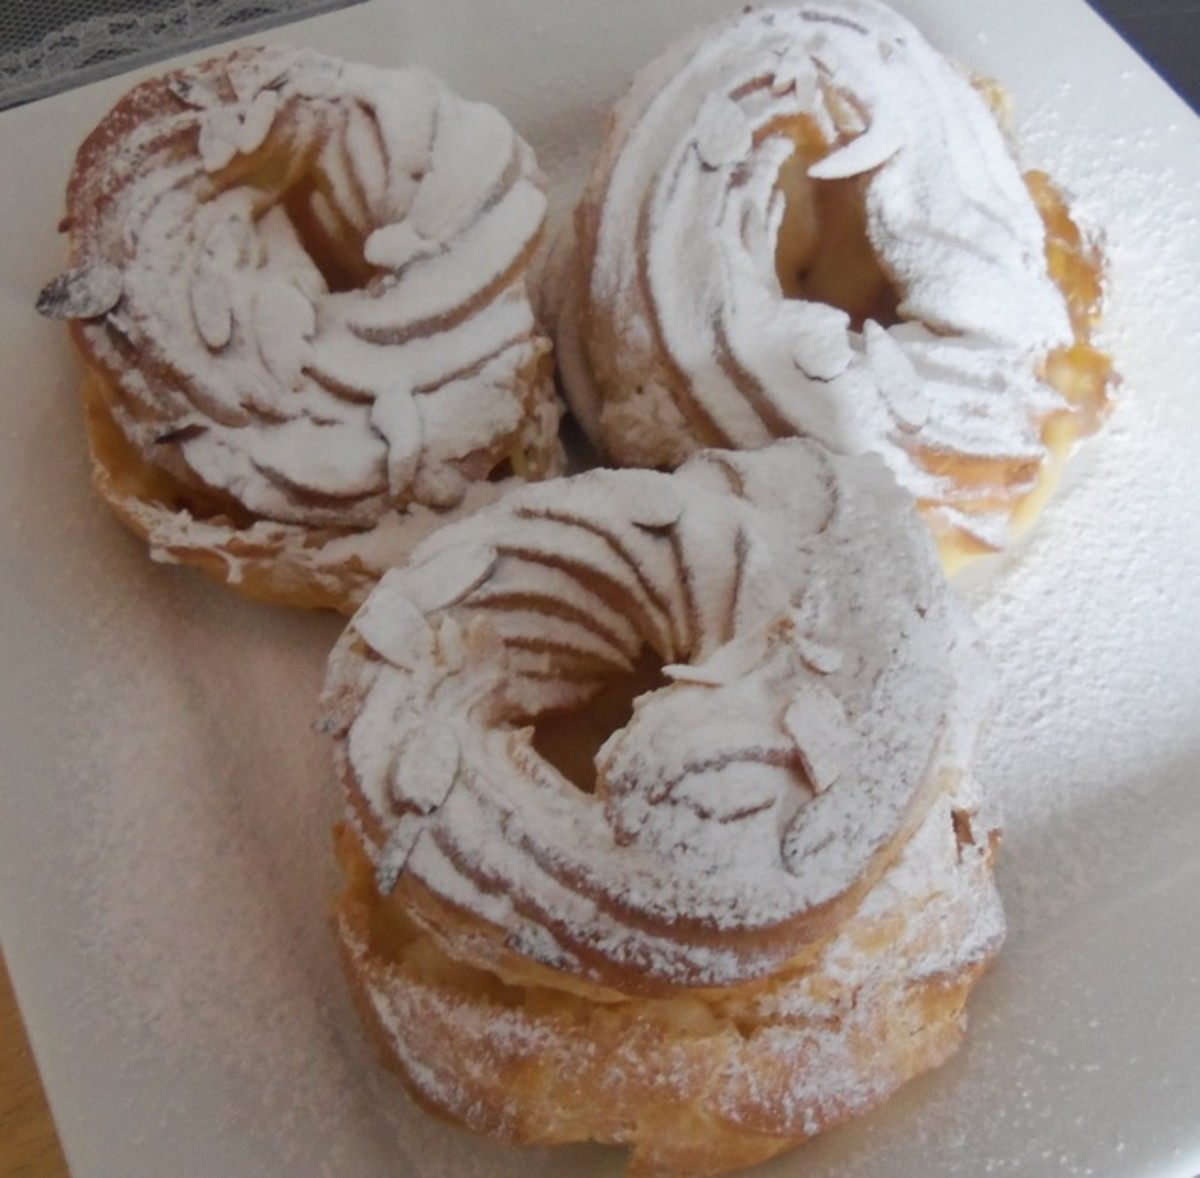 Paris-Brest are one of the great desserts you can make using choux pastry